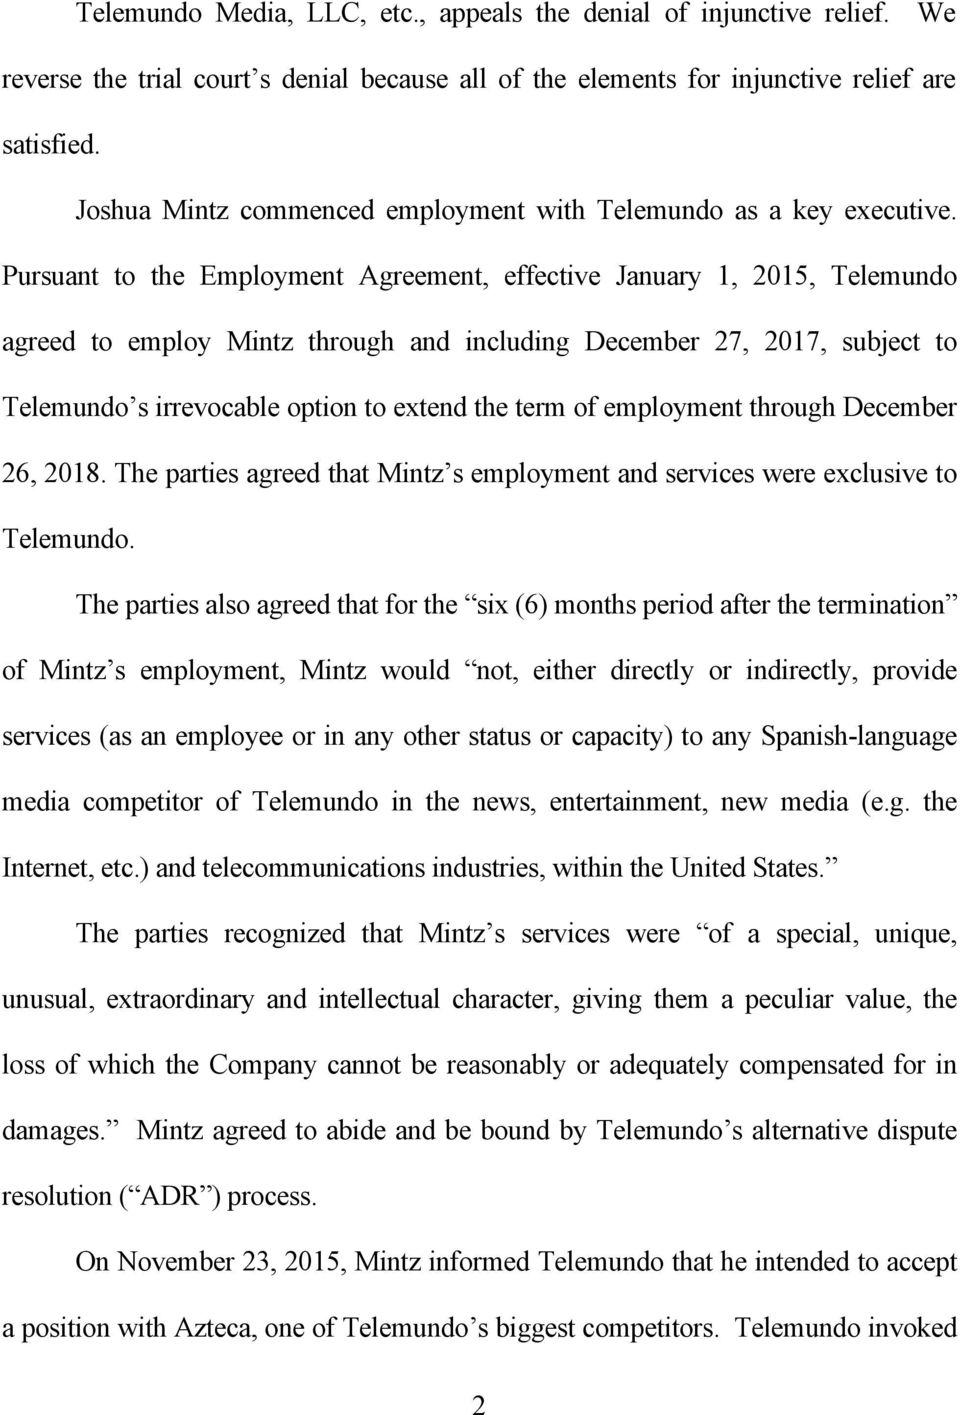 Pursuant to the Employment Agreement, effective January 1, 2015, Telemundo agreed to employ Mintz through and including December 27, 2017, subject to Telemundo s irrevocable option to extend the term